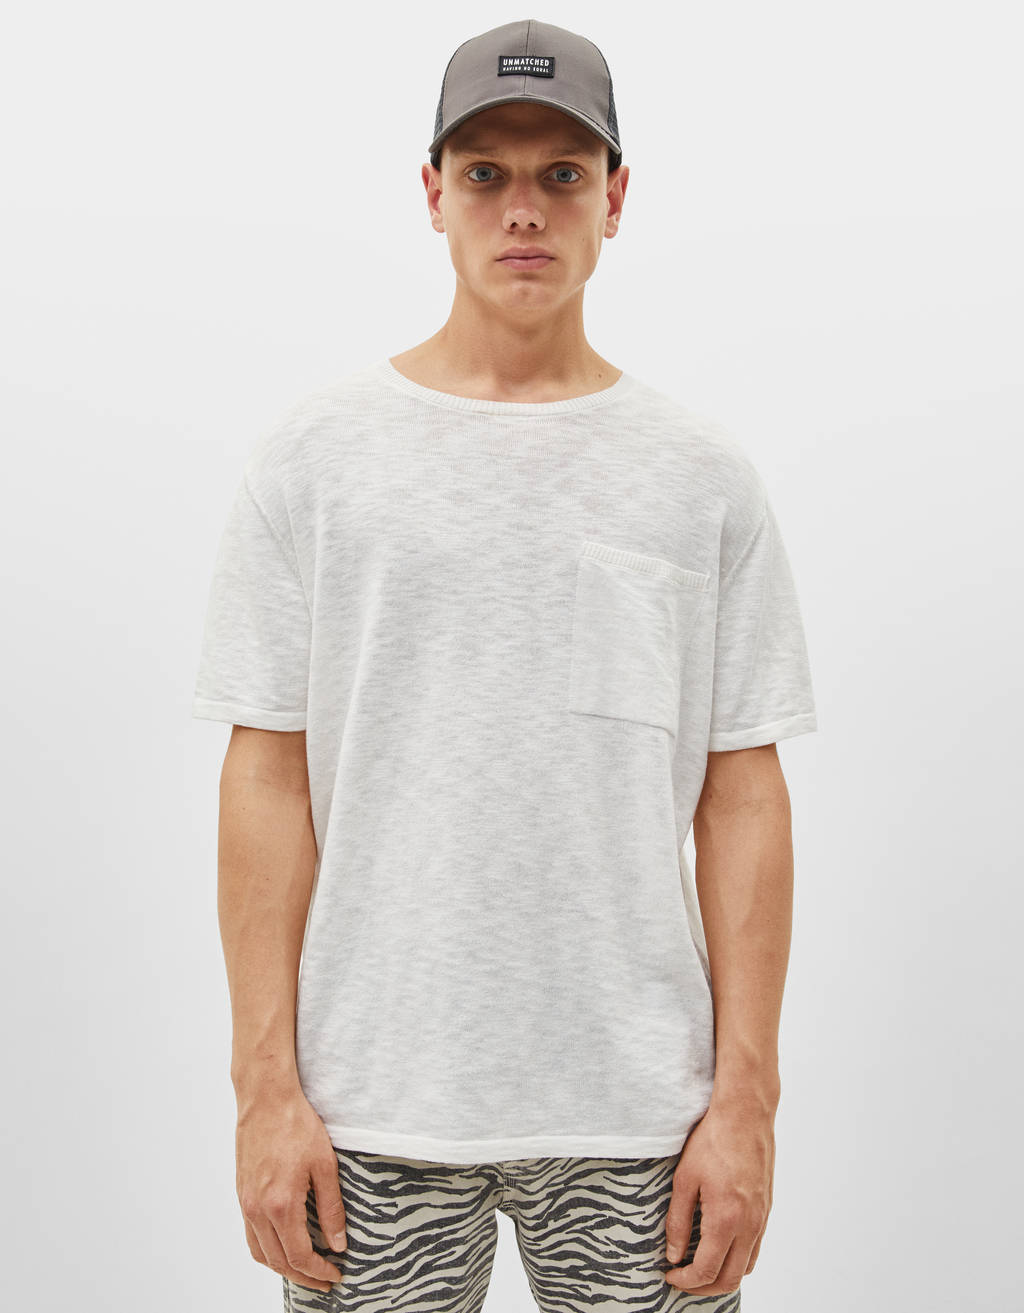 Knit short sleeve T-shirt